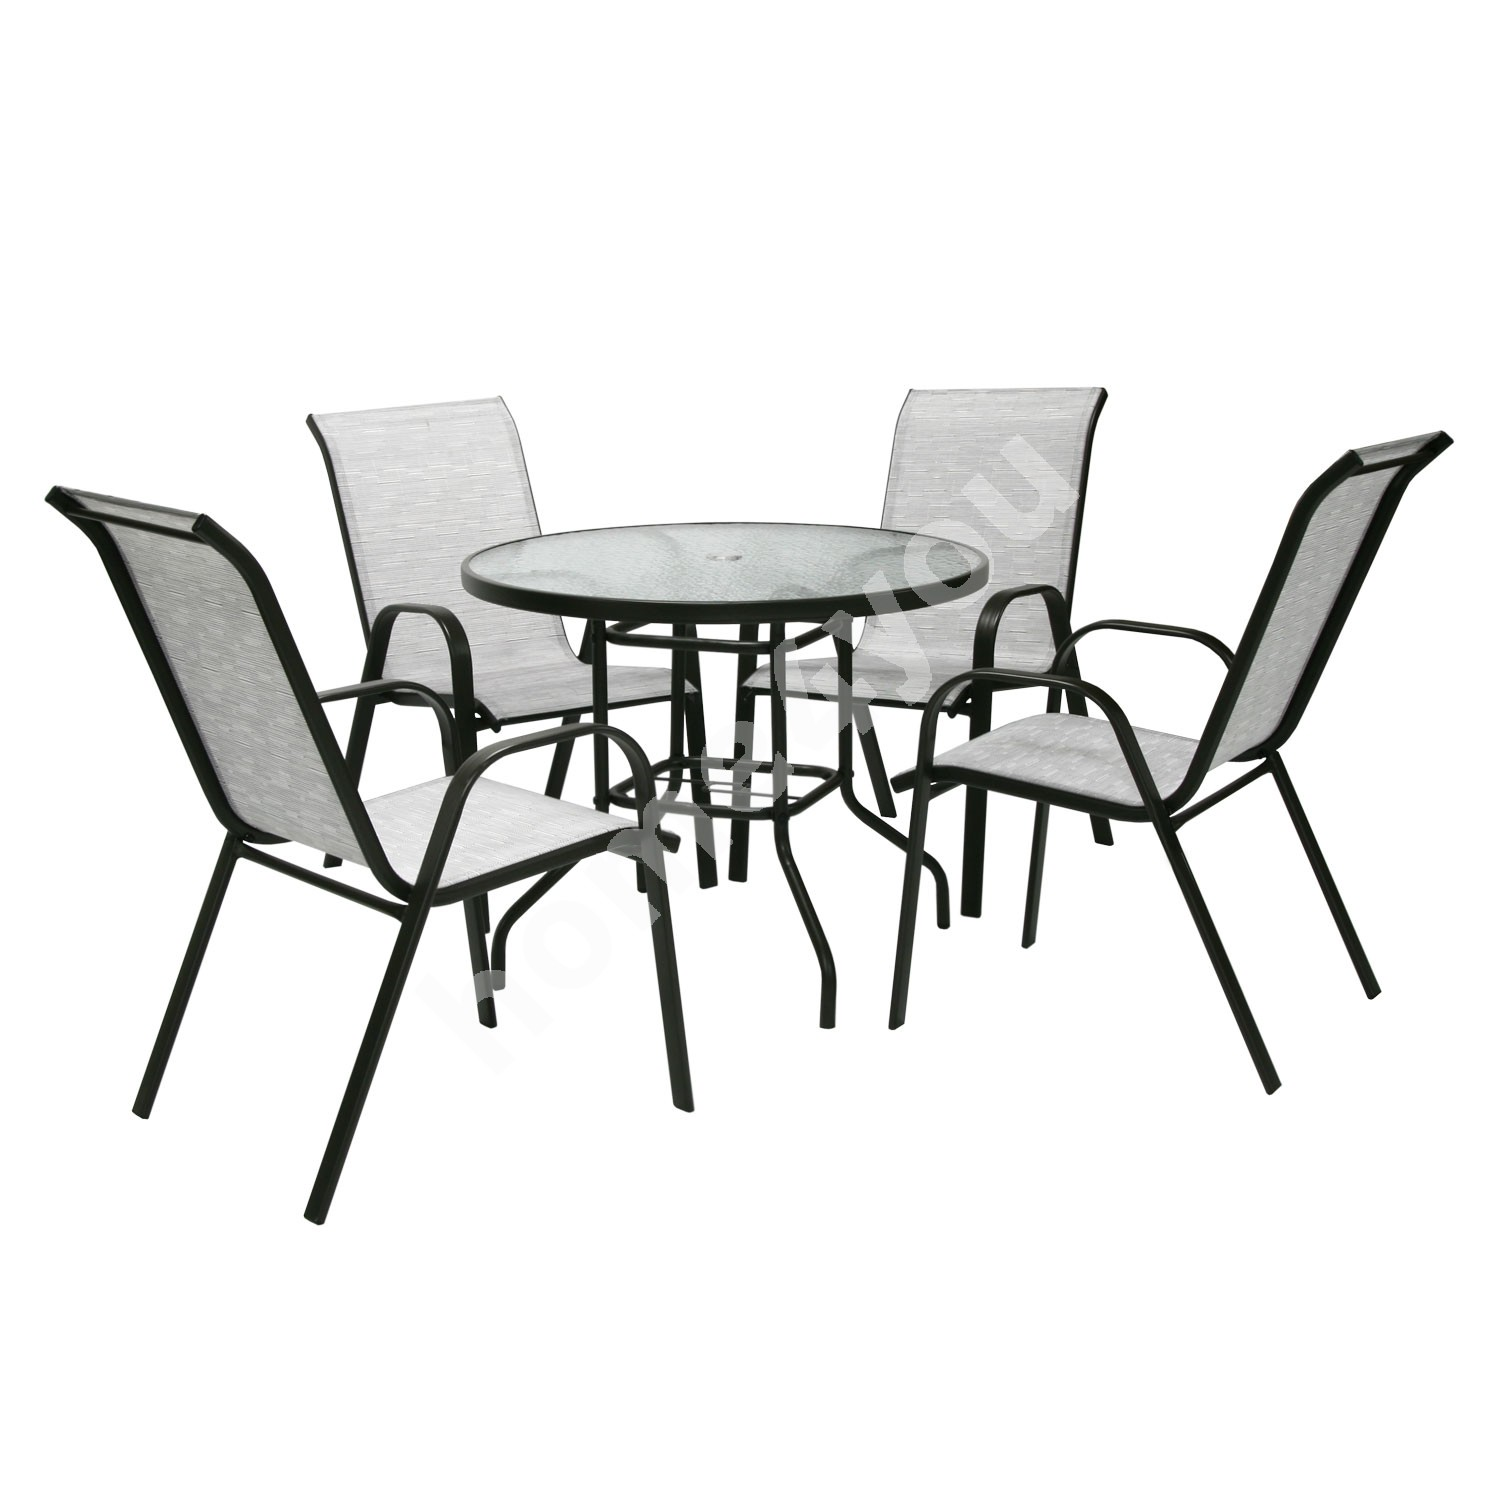 Set DUBLIN table and 4 chairs, D90xH71cm, table top: 5mm transparent wave glass, steel frame, color: dark brown